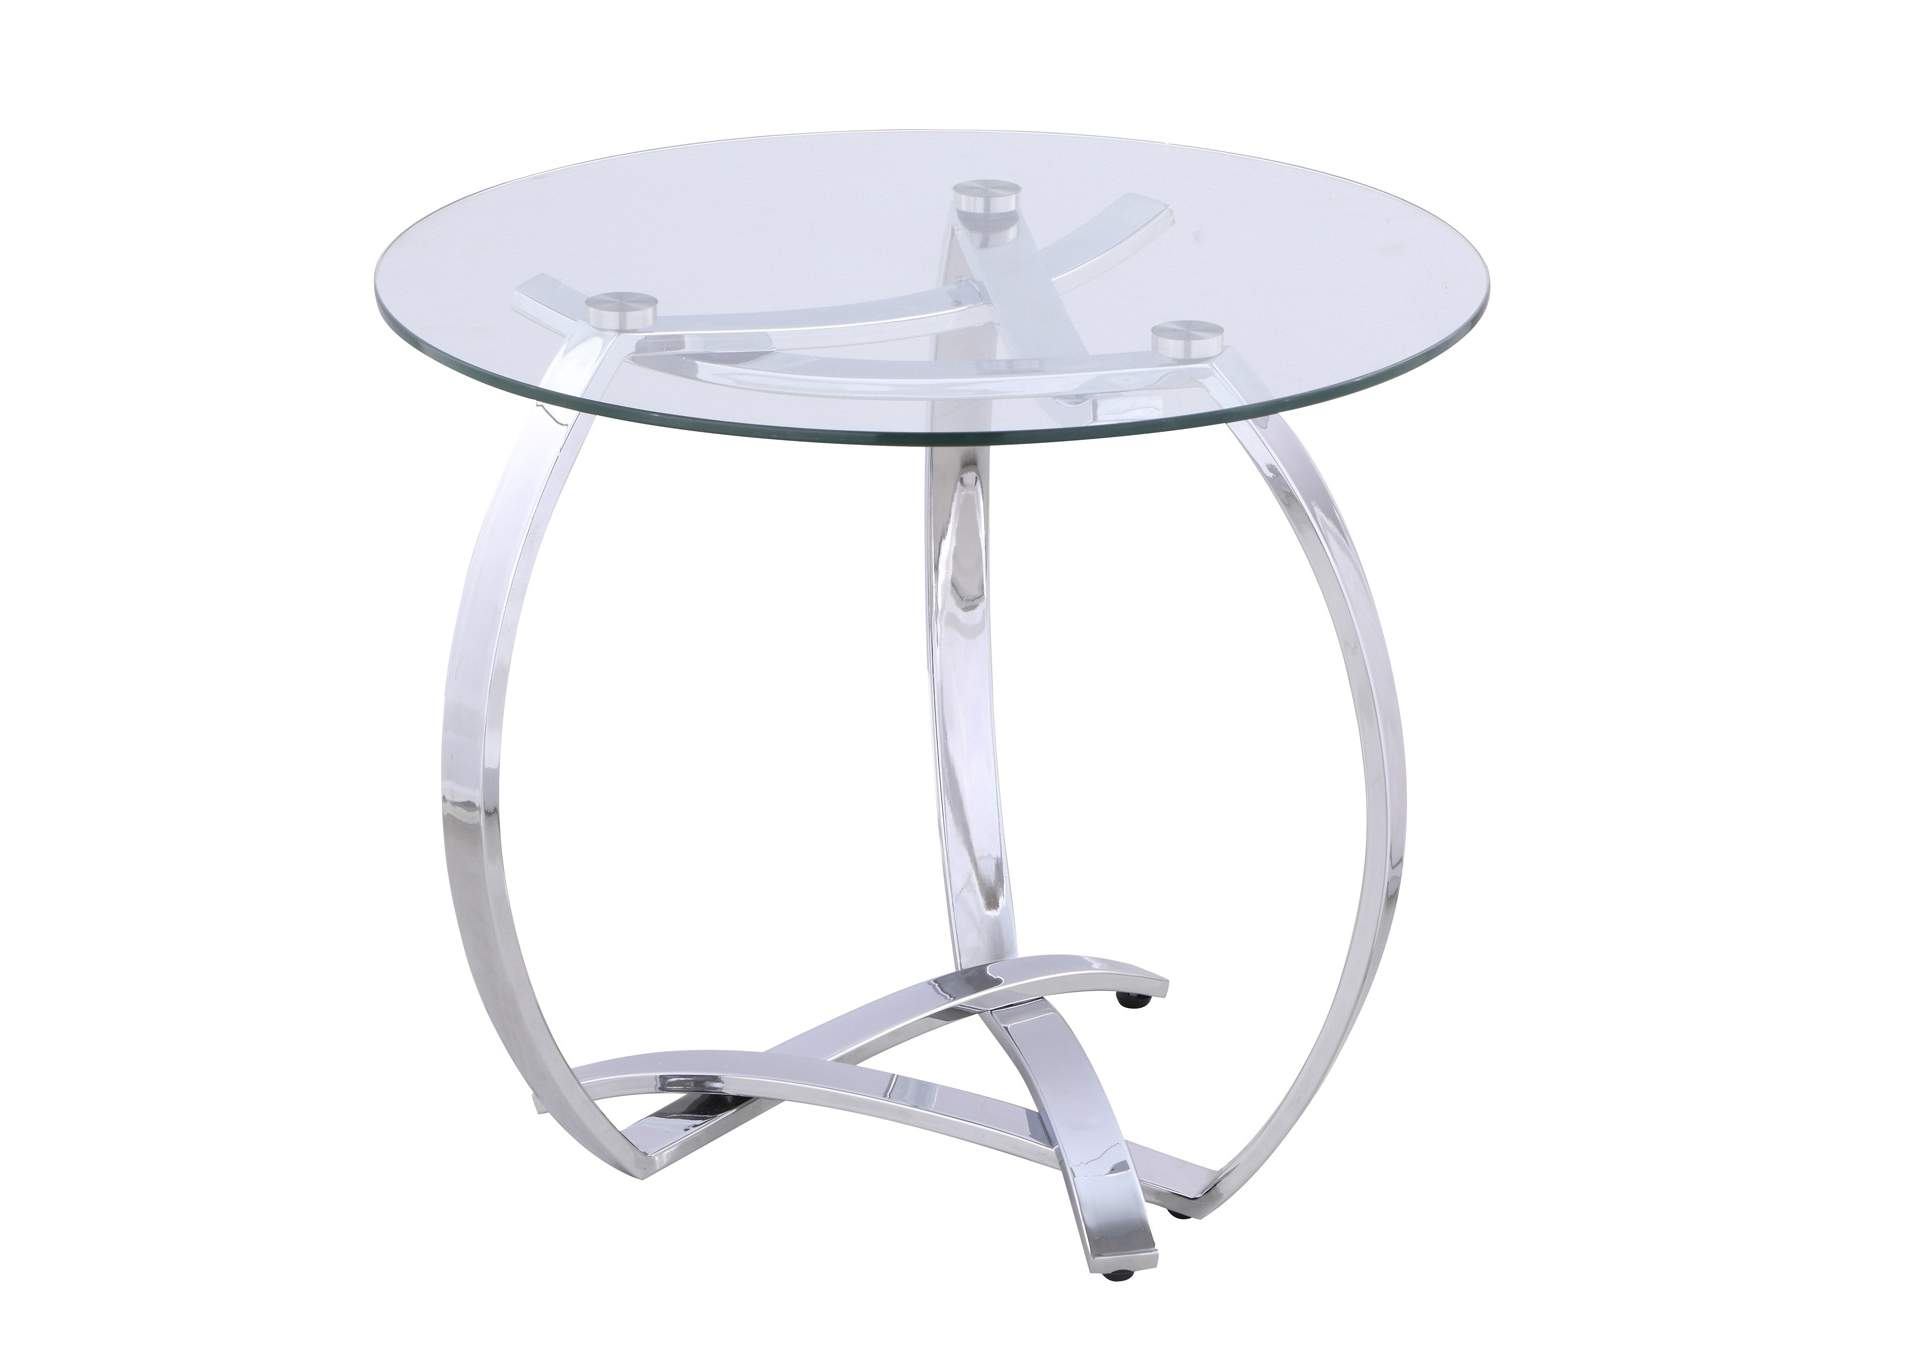 Whitney Whitney Lamp Table,Chintaly Imports